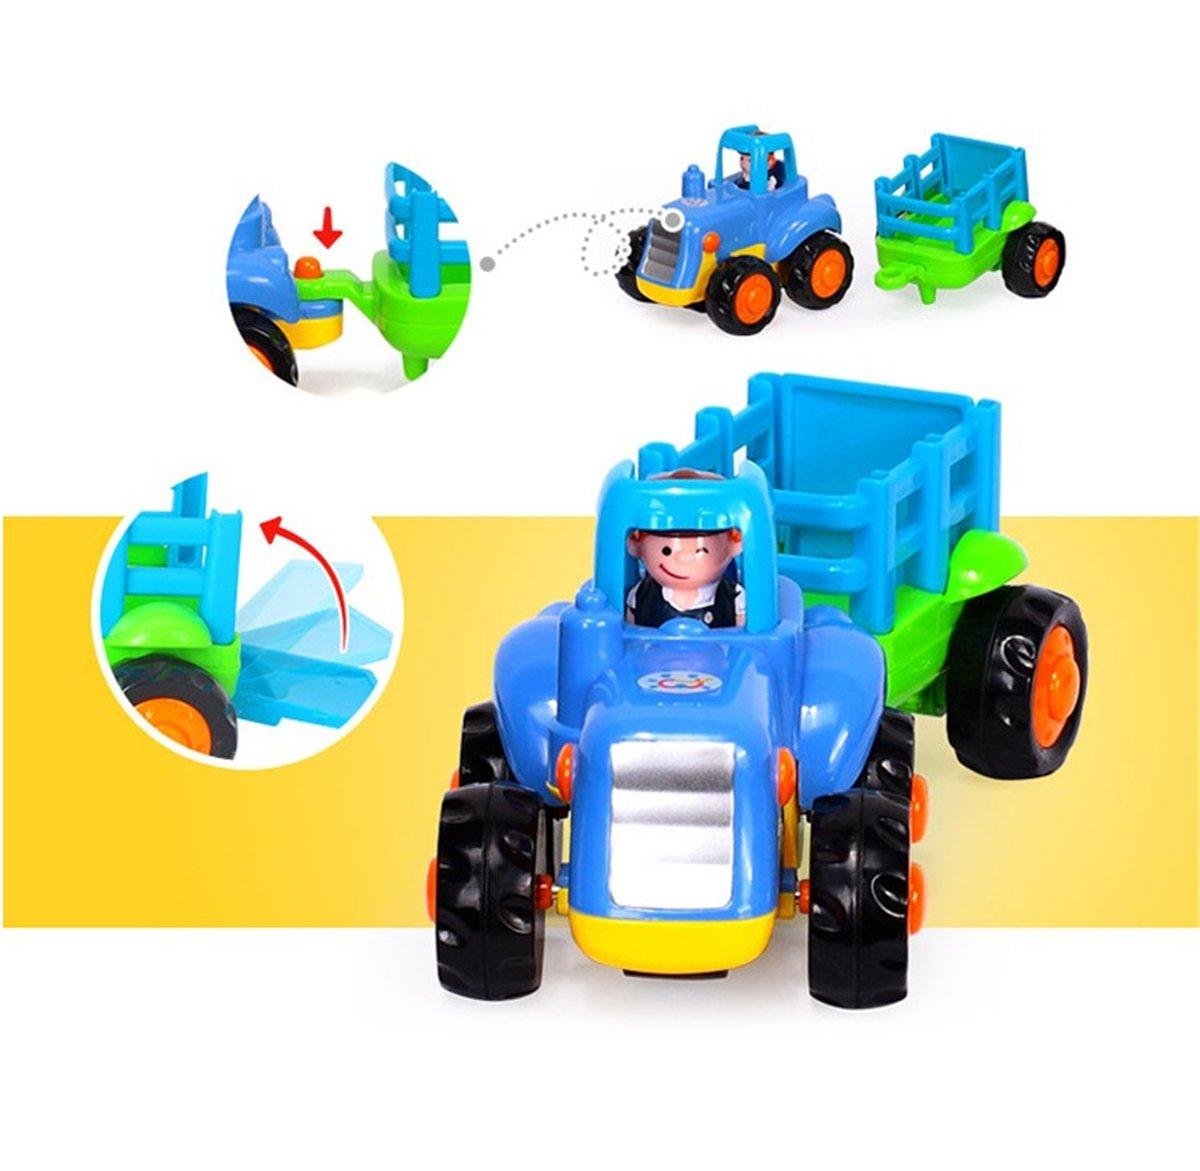 Truck Toys For 3 Year Olds : Galleon d mcark early educational toddler baby toy push